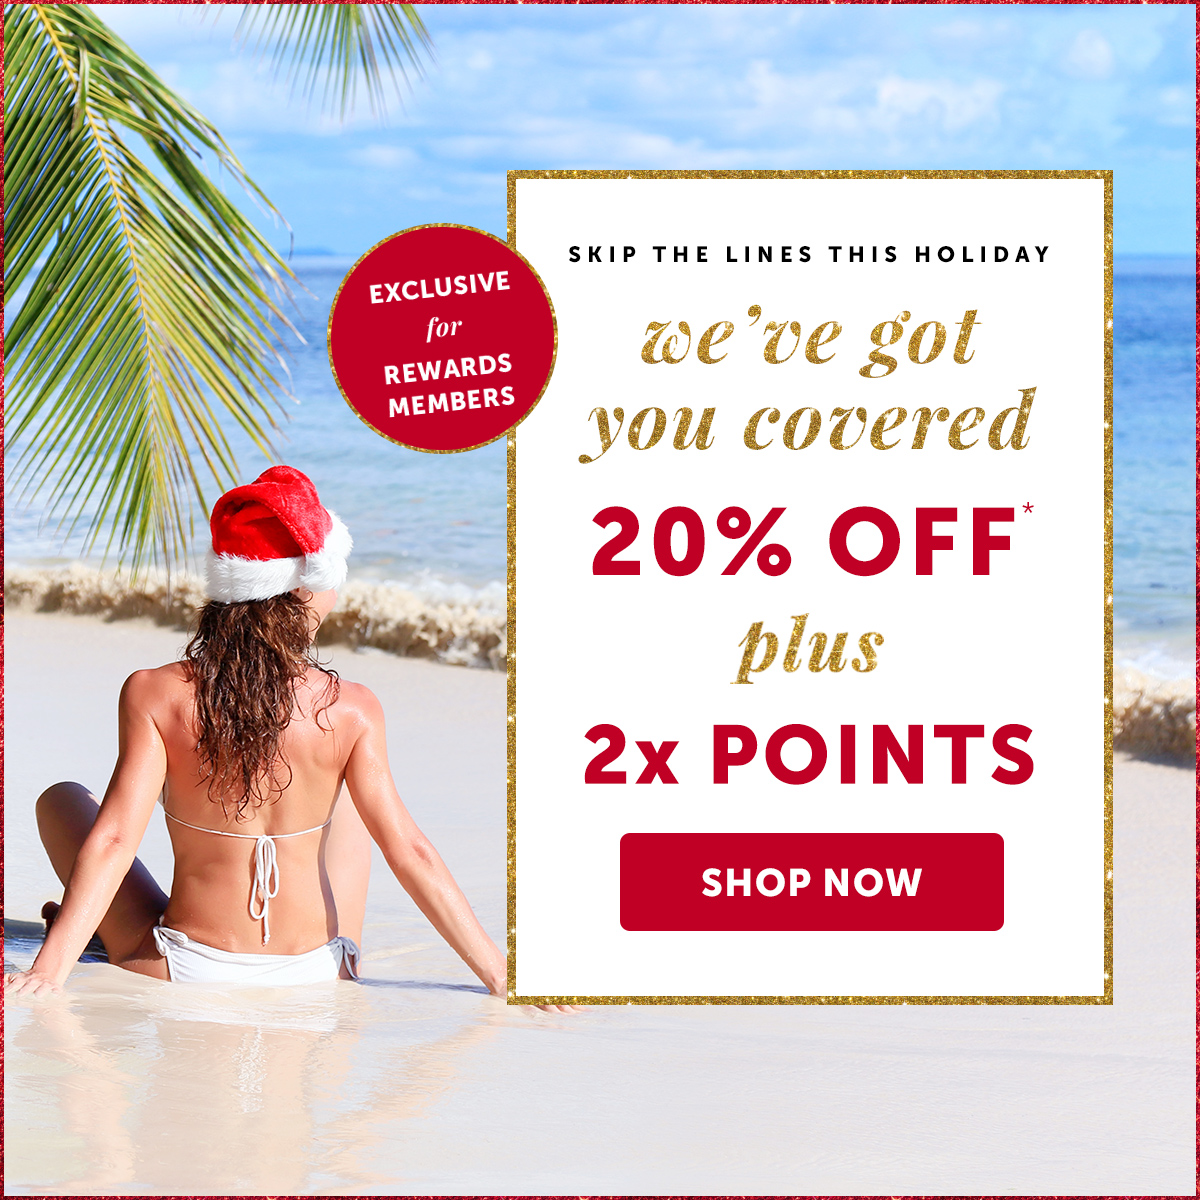 Exclusive Offer: Take 20% OFF + 2X Points